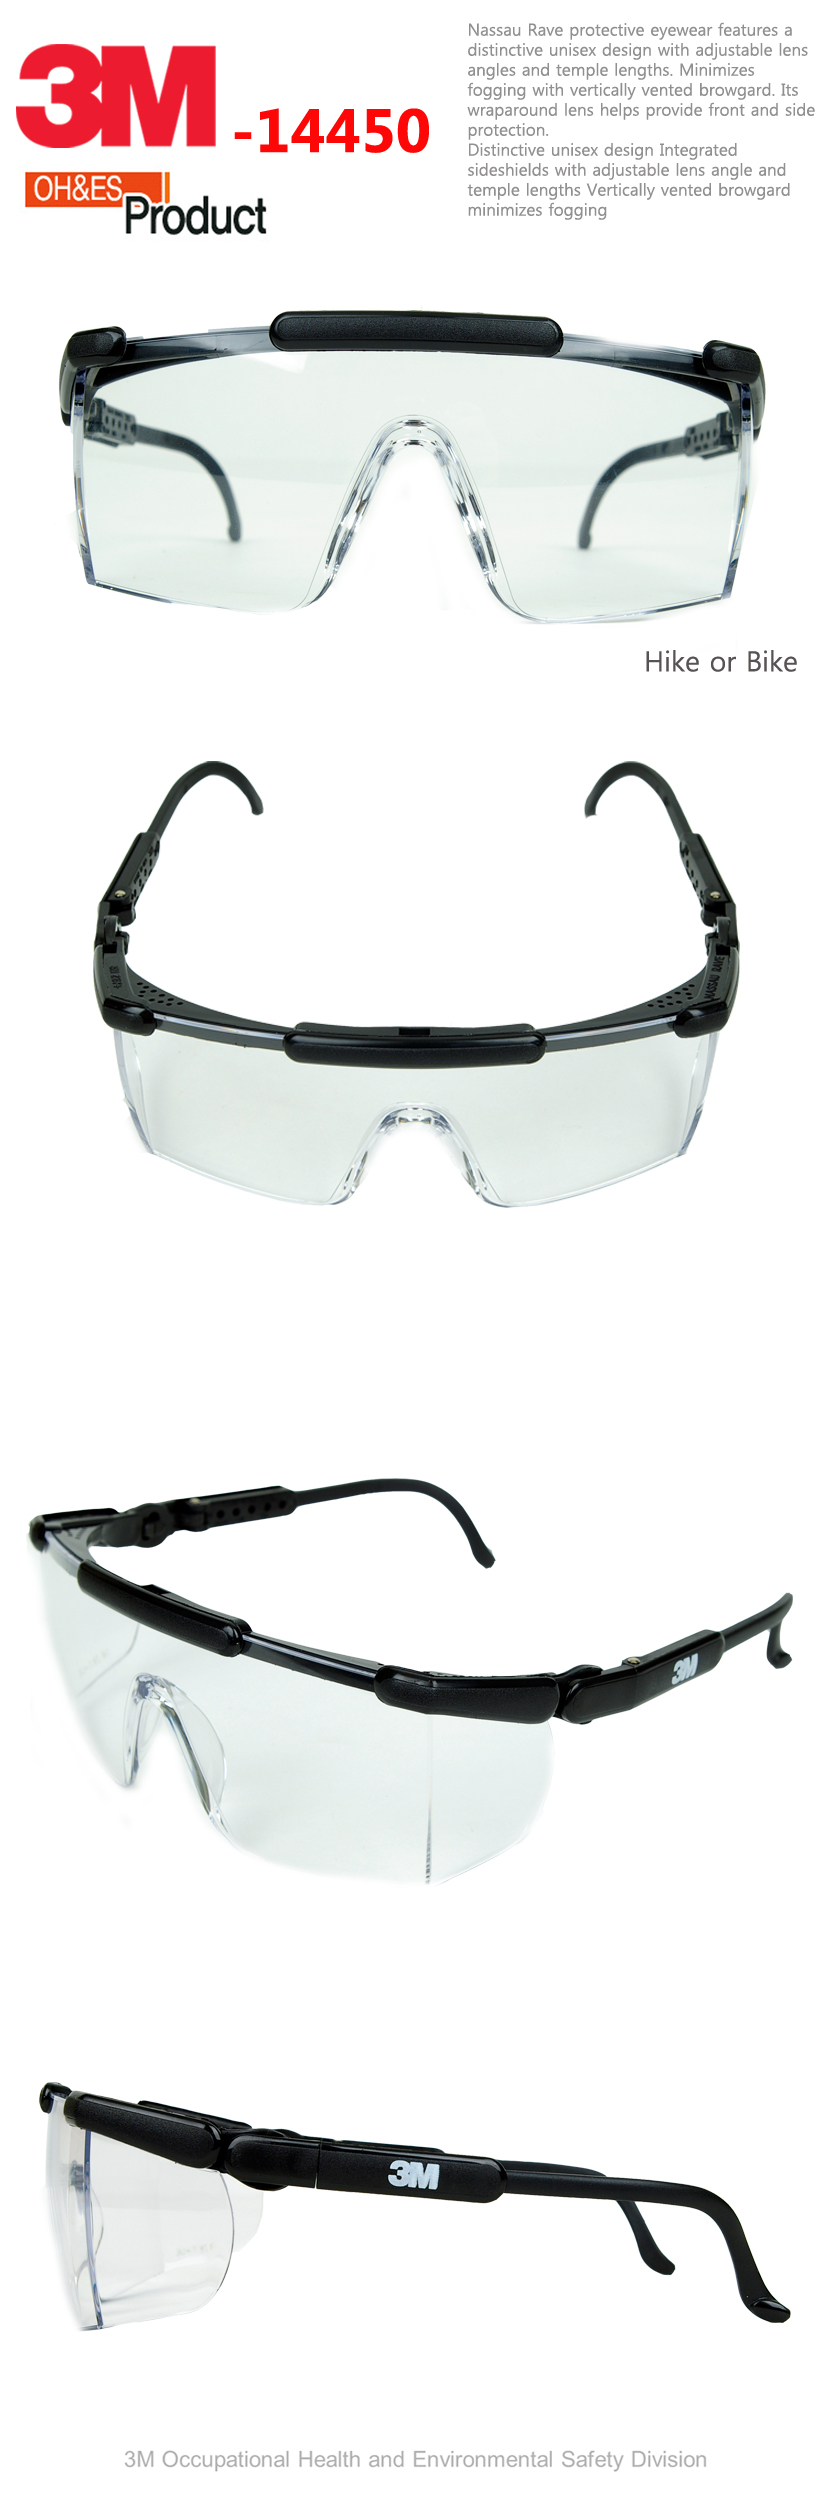 Eyeglass Frame Manufacturers United States : 3M Nassau Rave Protective Eyewear, 14450 Clear Lens ...